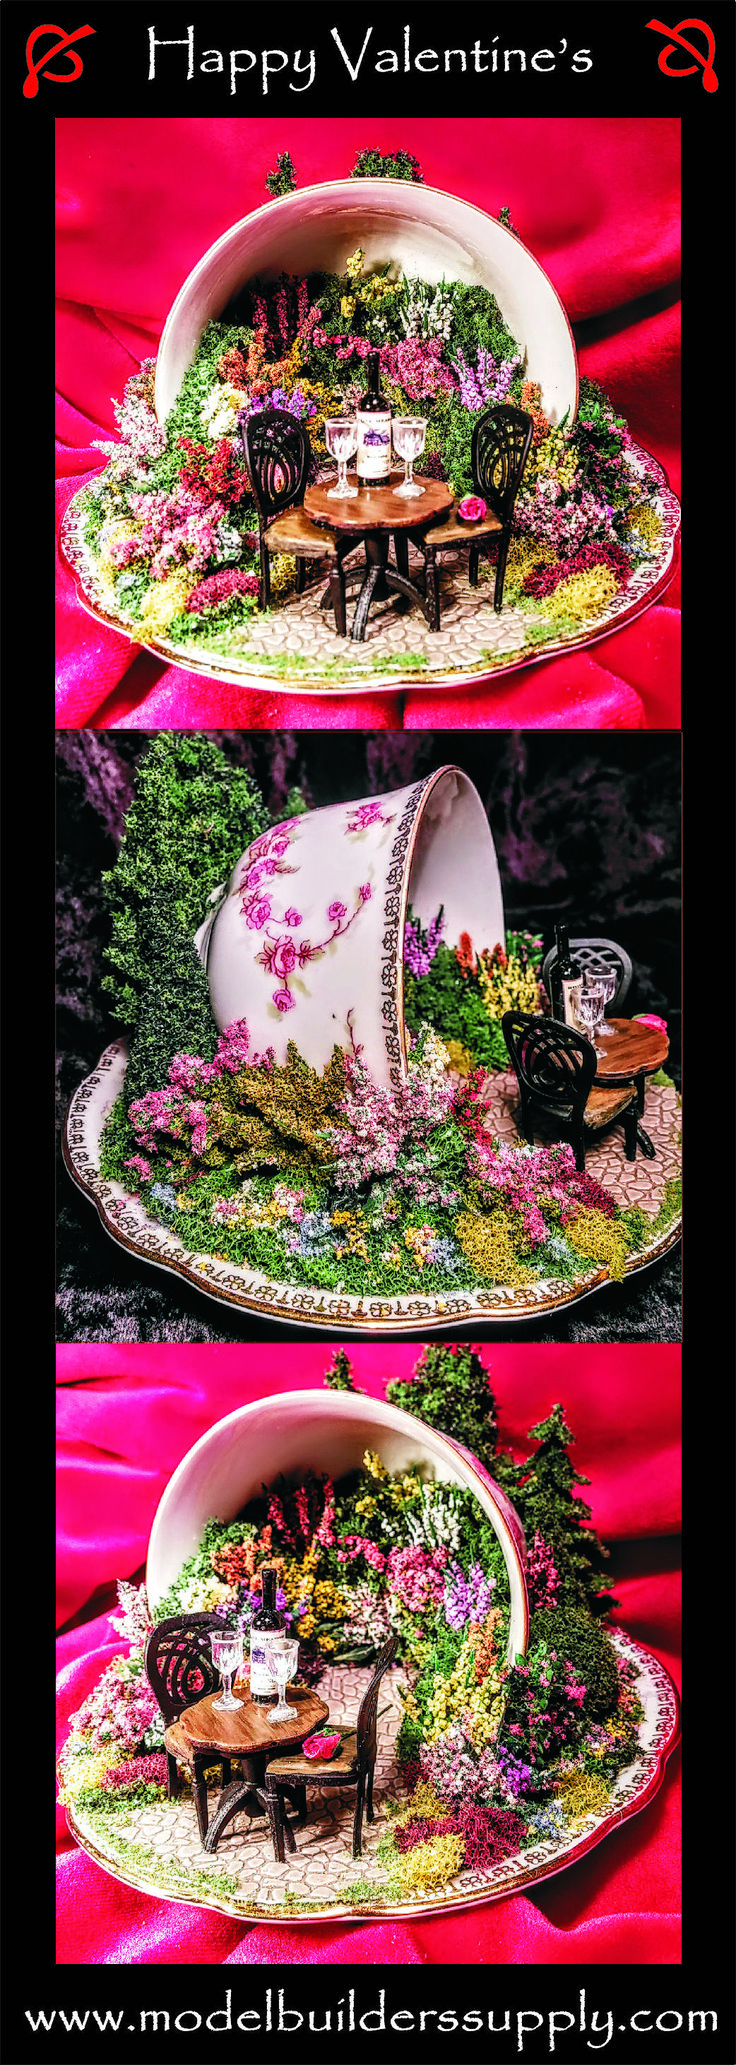 """A rose is just a rose, until you put it in a miniature English garden inside a teacup, then it's something very special. This teacup is appropriately named """" Bridal Rose"""""""